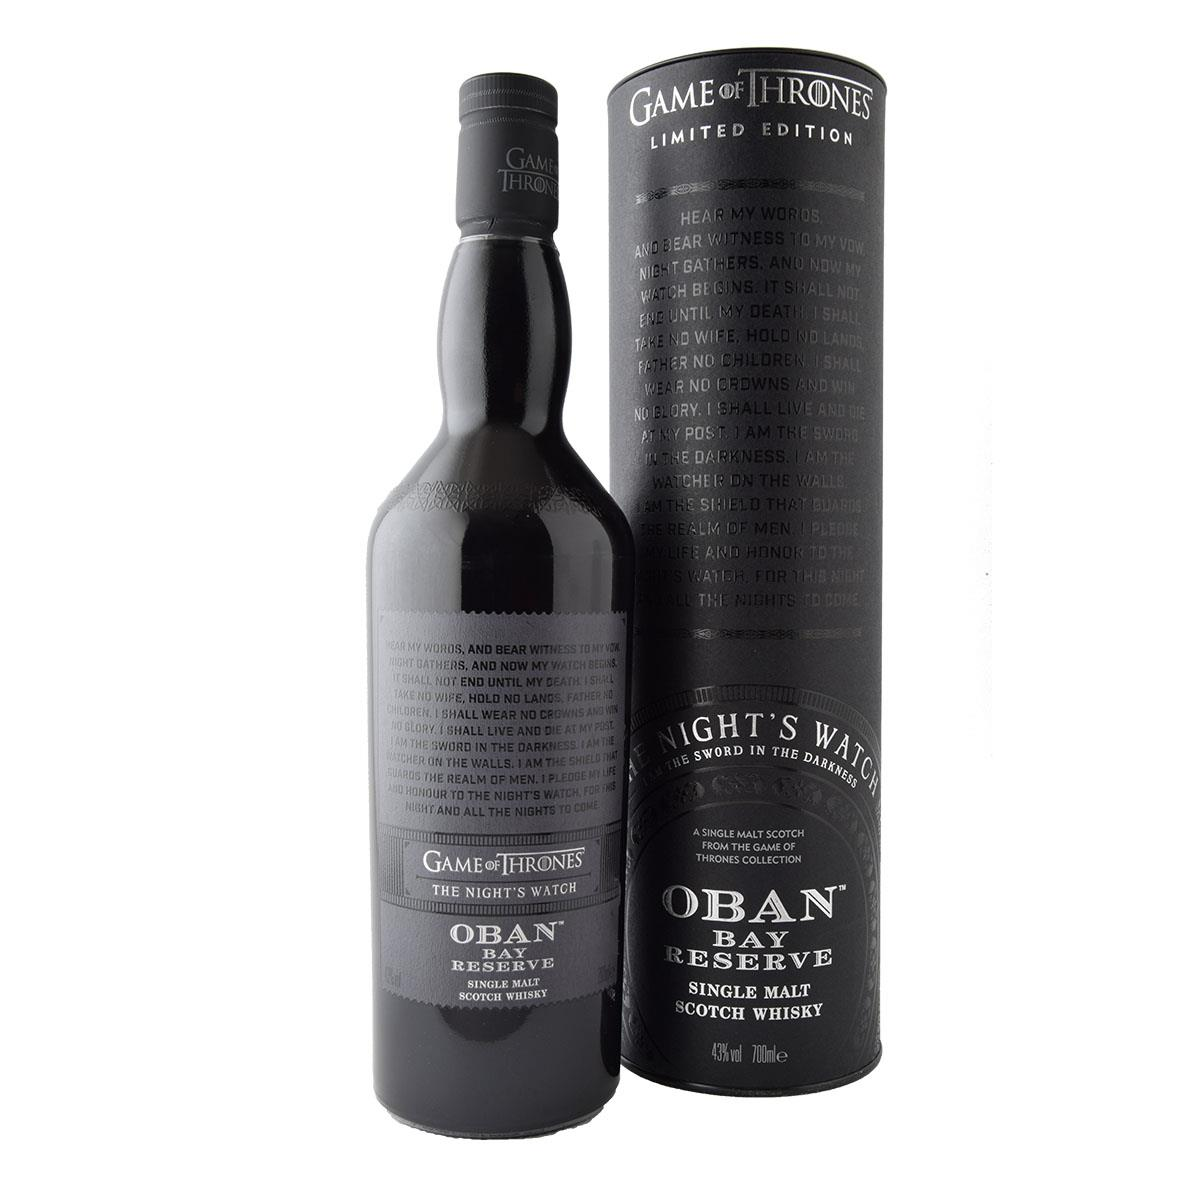 Oban Game of Thrones 700ml